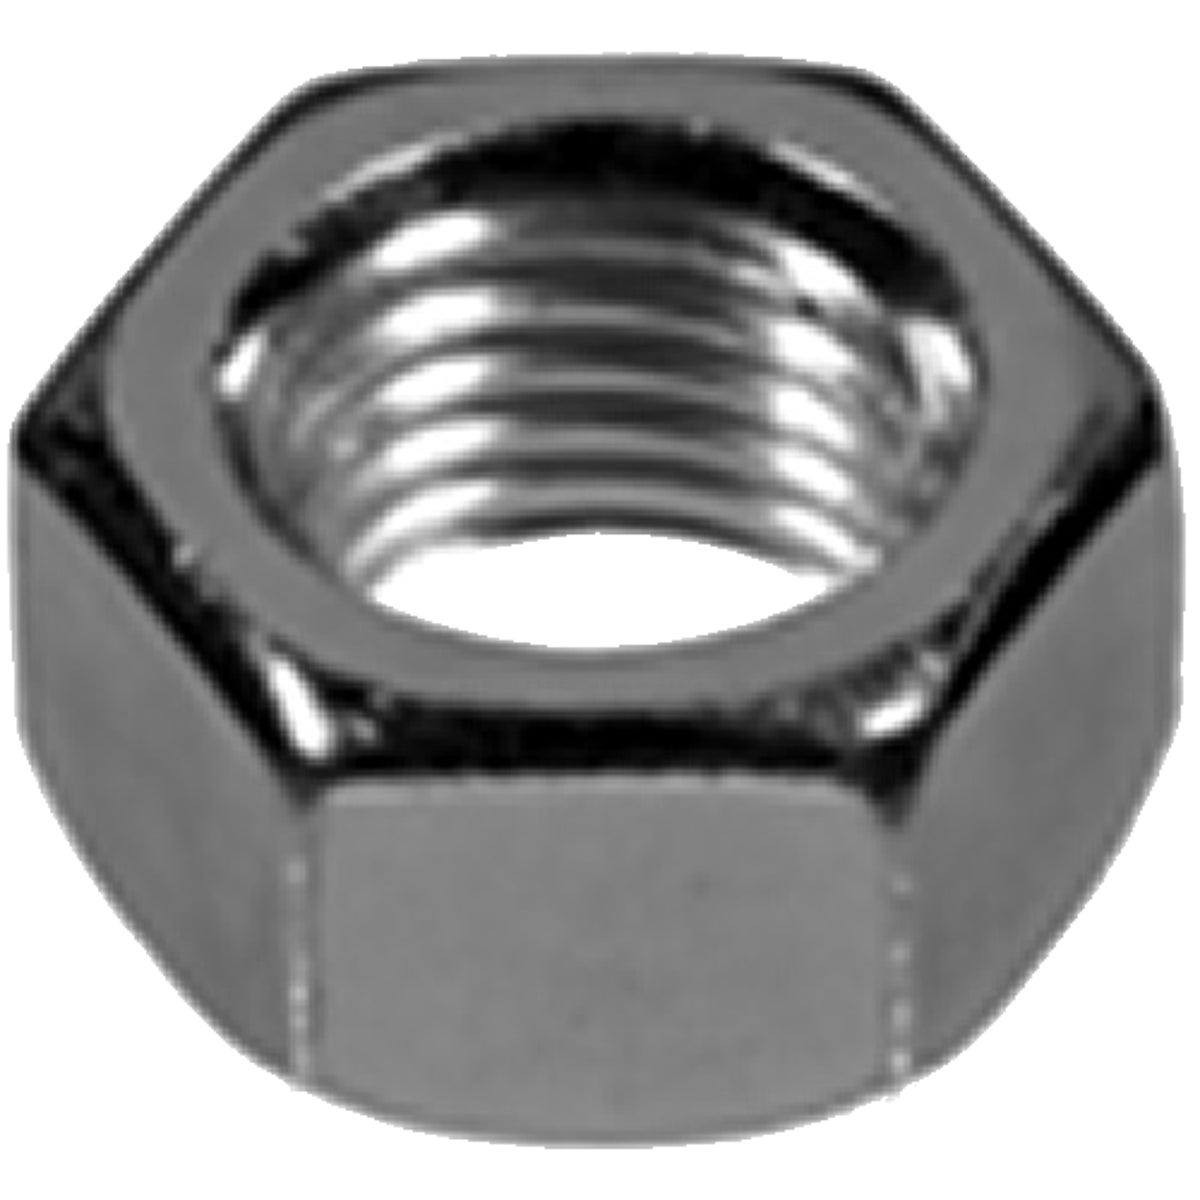 1/4-20 C THREAD NEX NUT - 150003 by Hillman Fastener